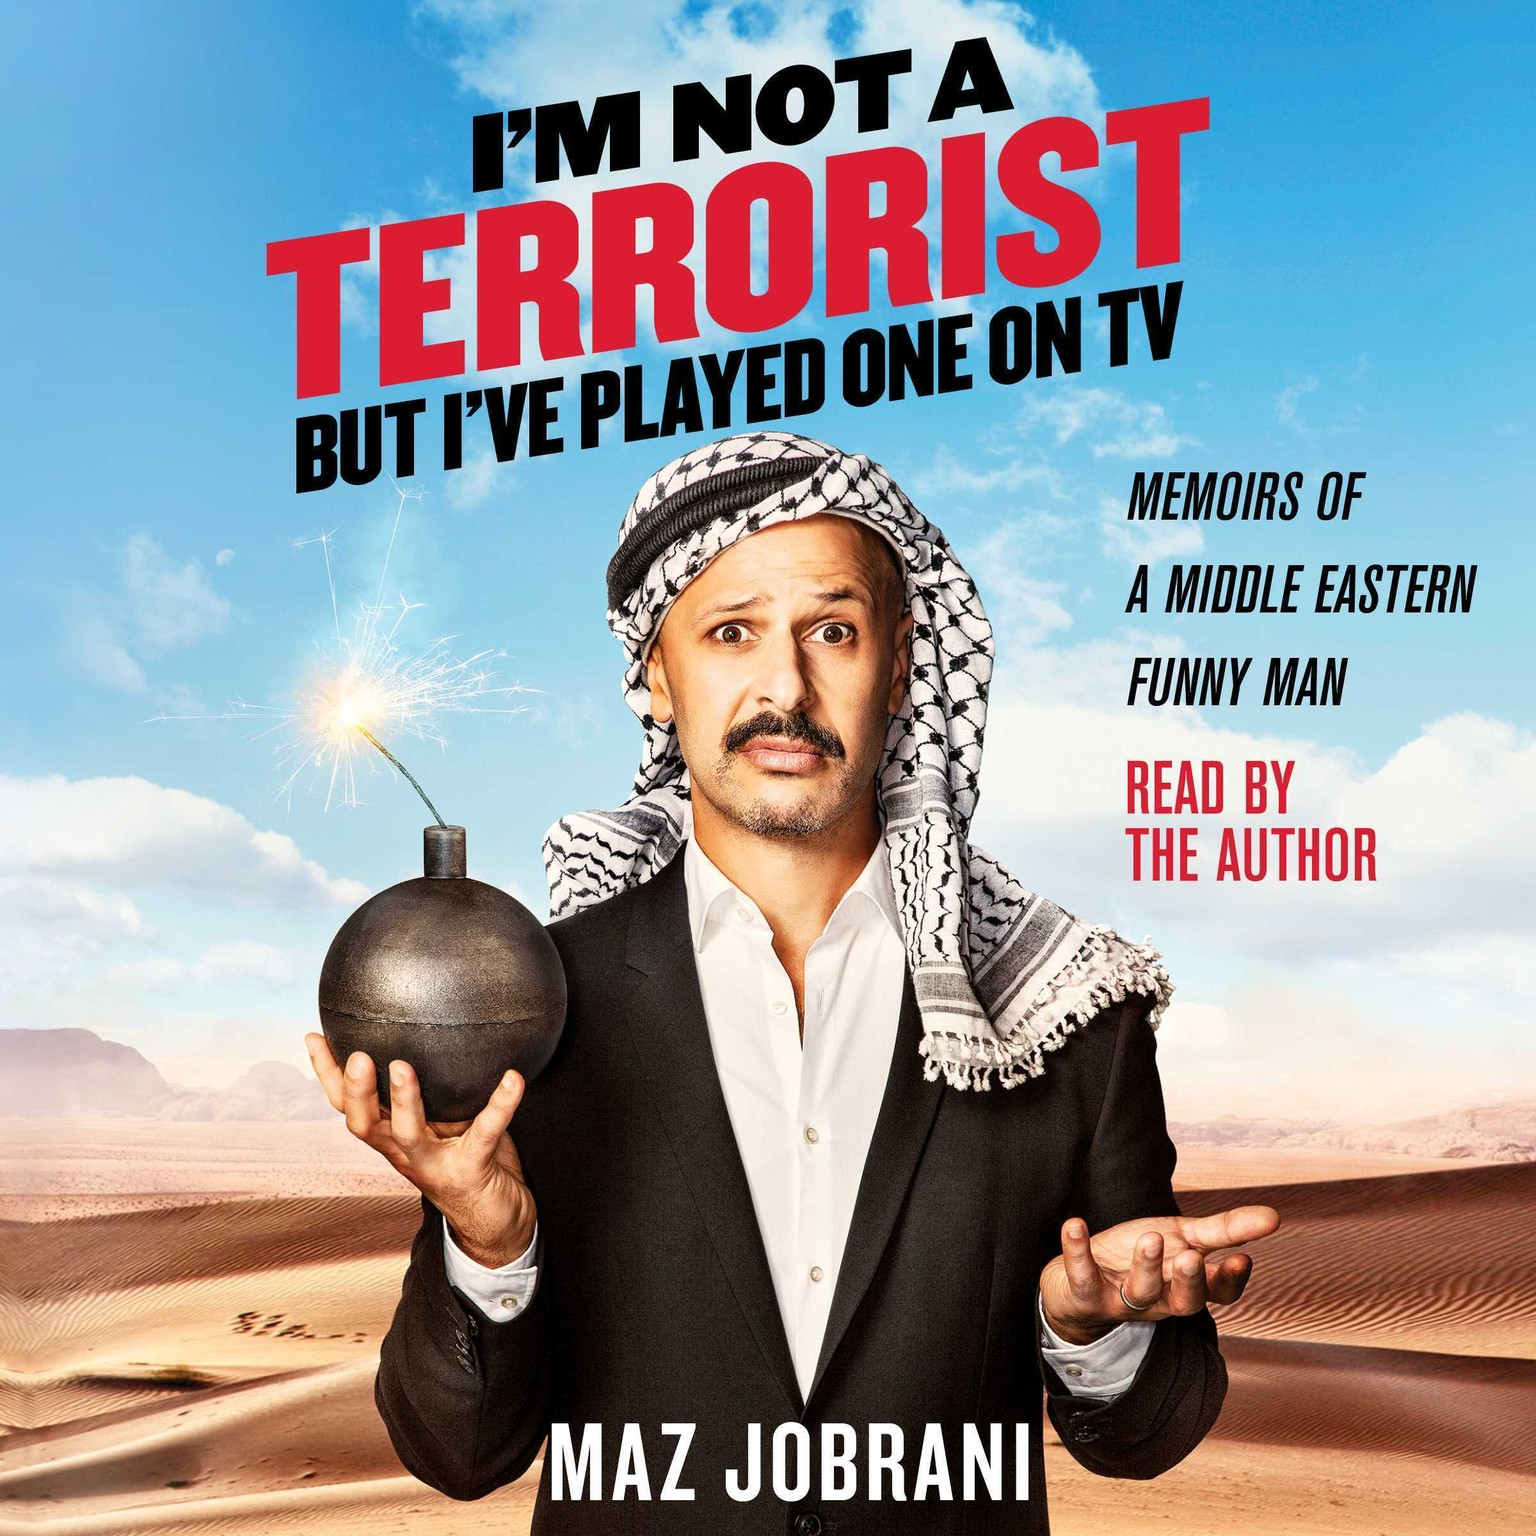 Extended Audio Sample Im Not A Terrorist But Ive Played One On TV Memoirs Of Middle